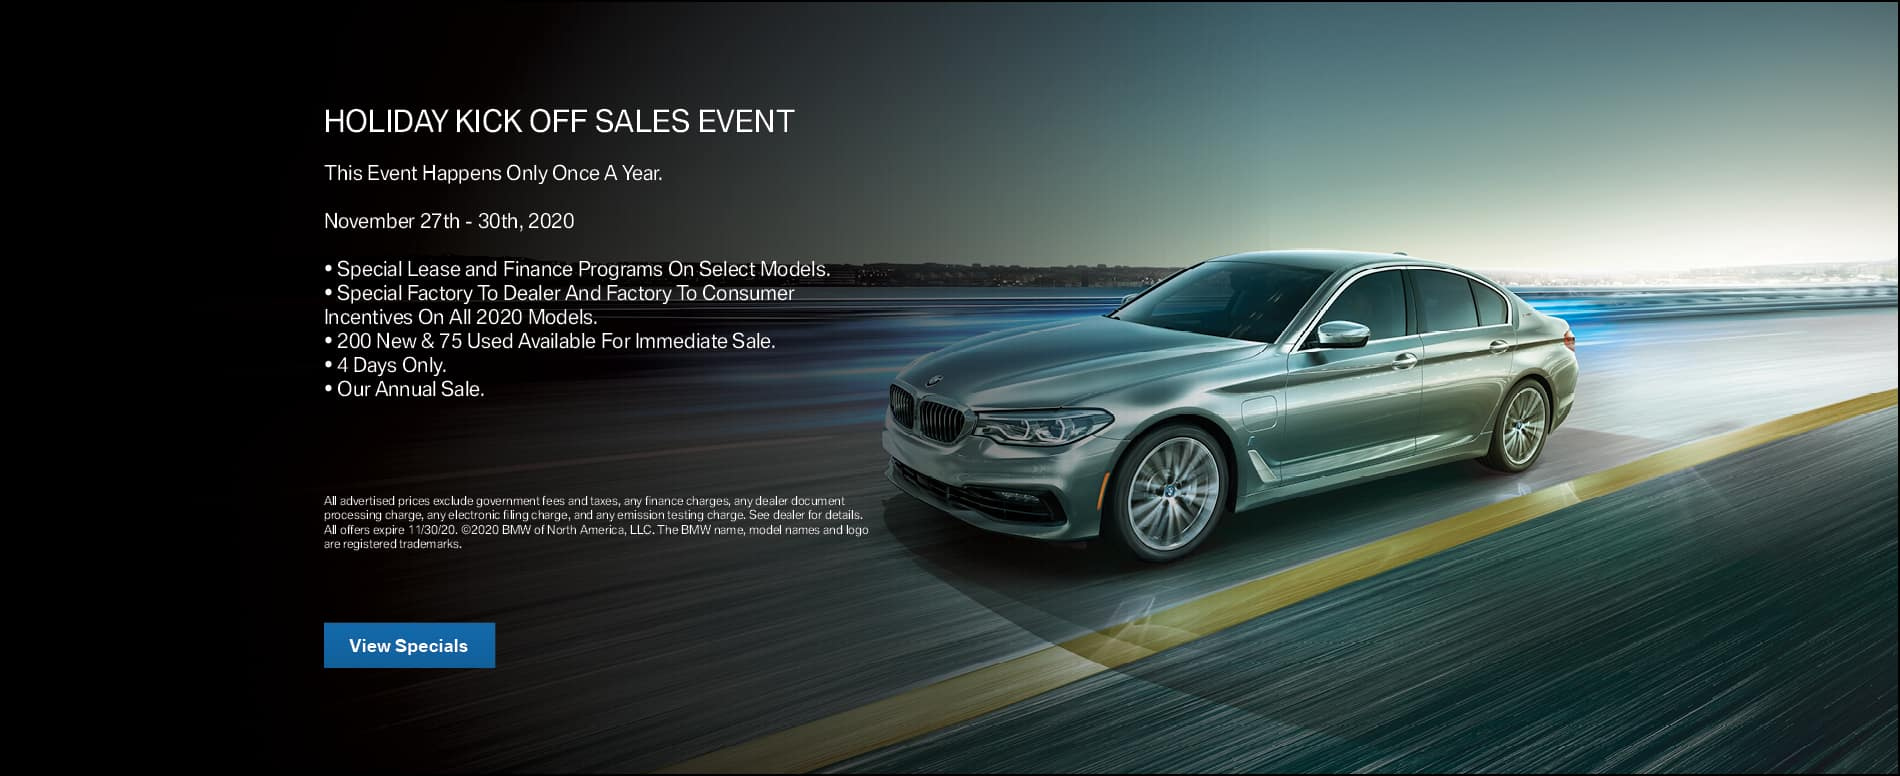 Holiday Sales Kick Off Event